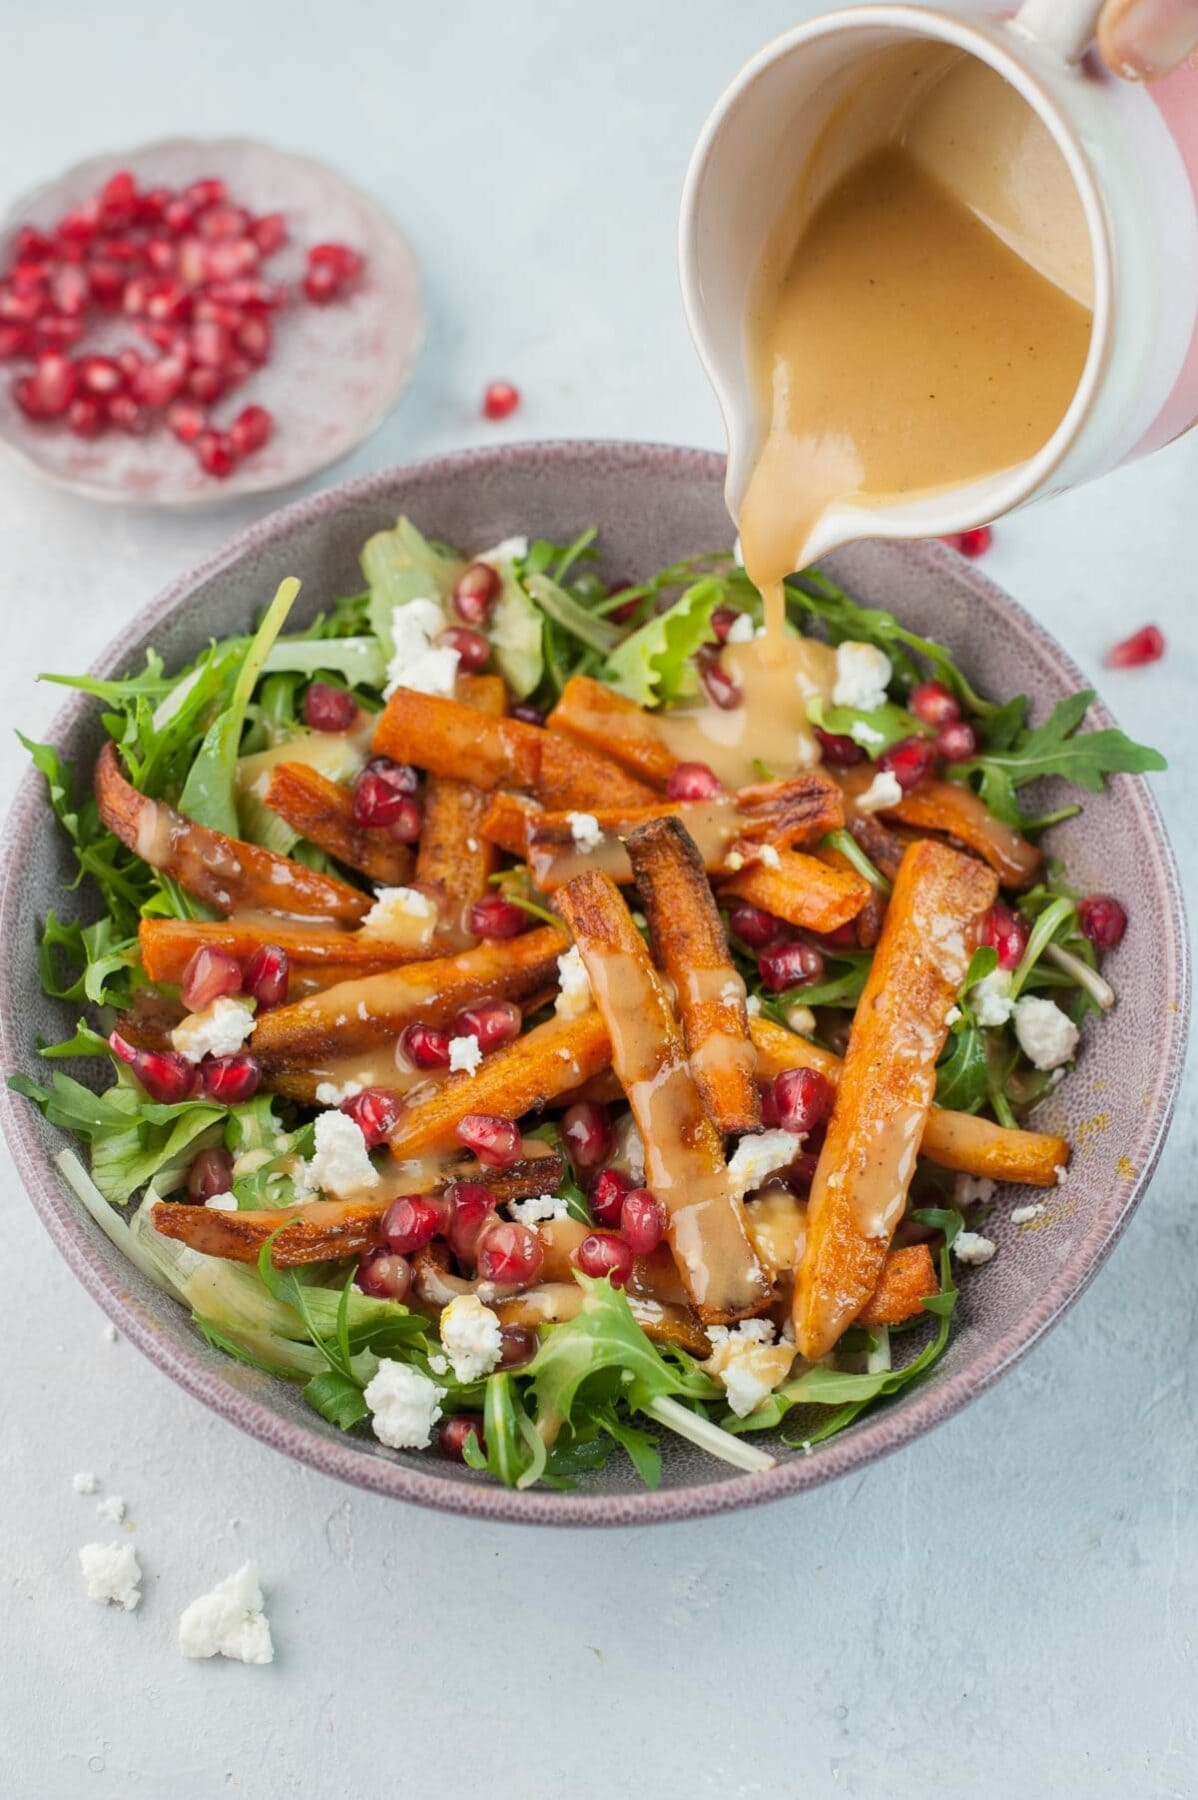 Peanut butter lemon dressing is being poured over roasted carrot salad.